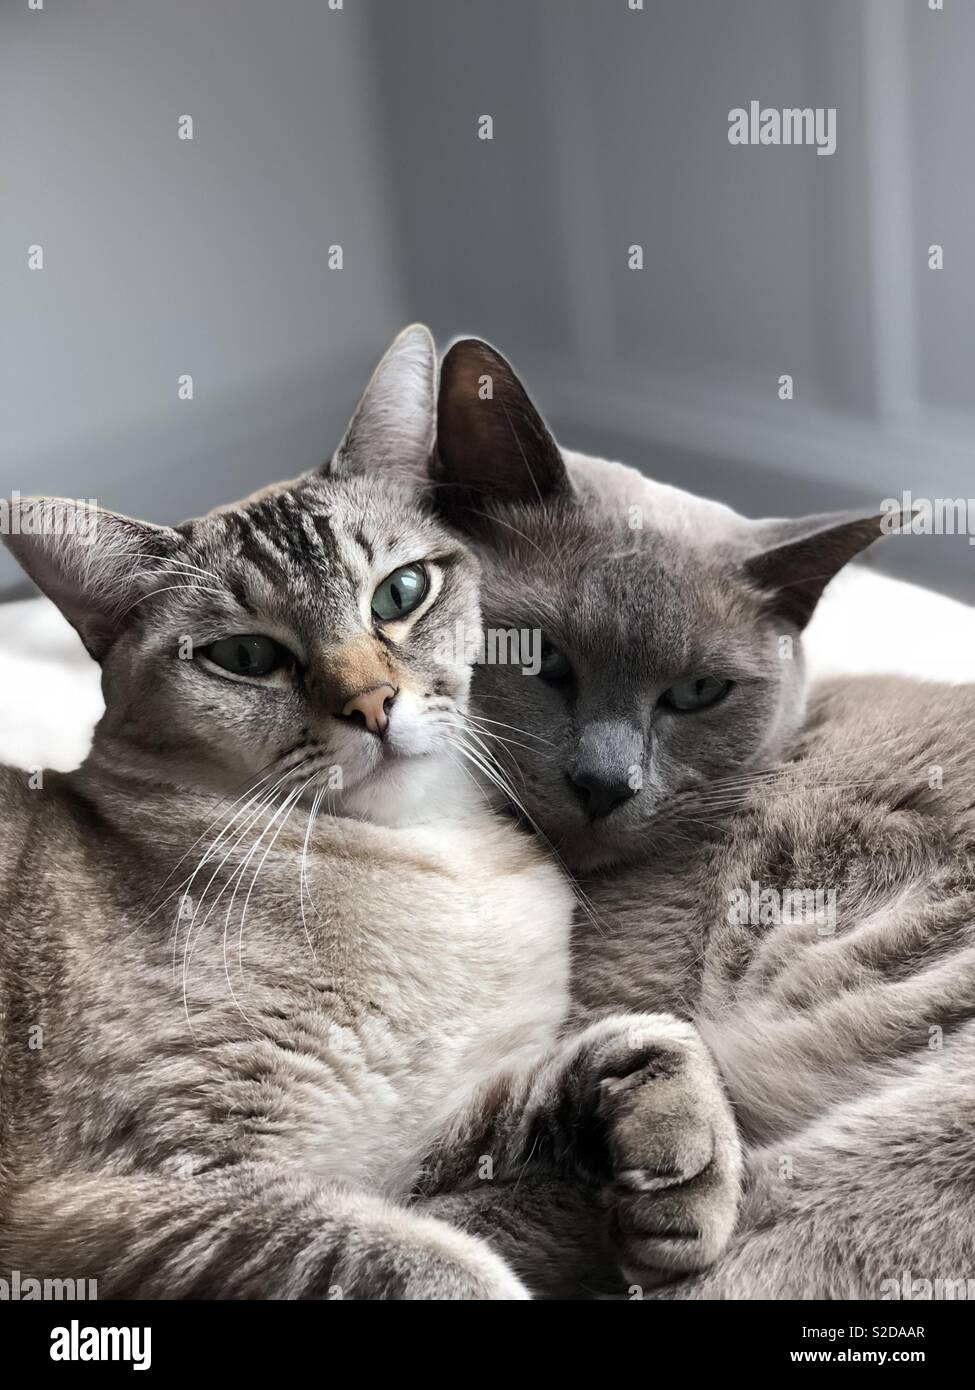 Cat Brotherly Love - Stock Image